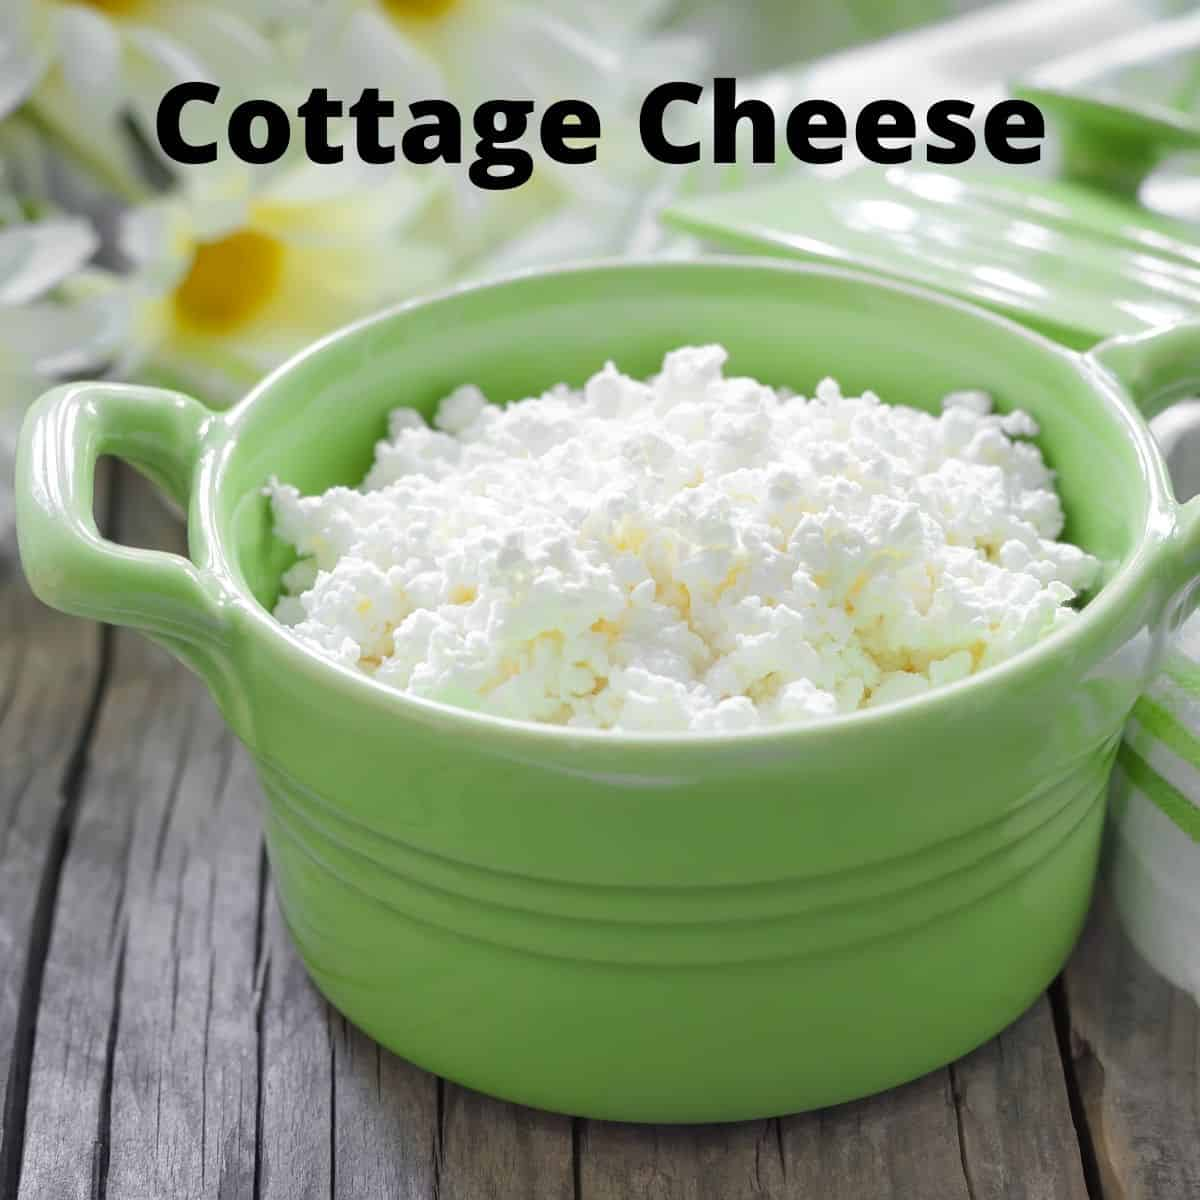 cottage cheese in green bowl